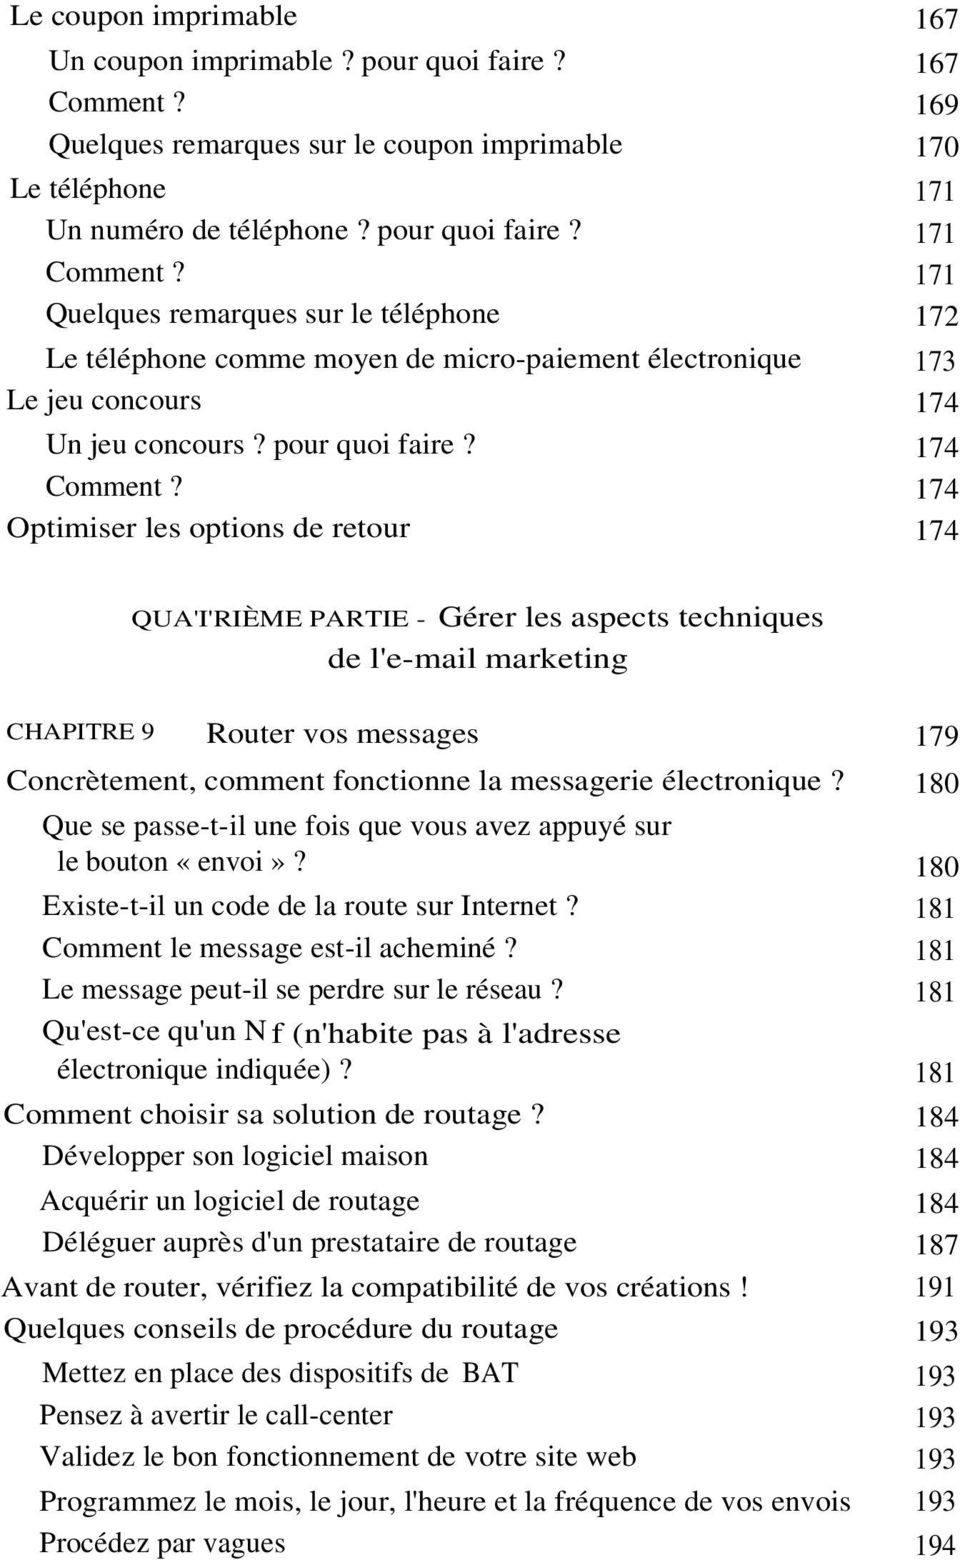 174 Optimiser les options de retour 174 QUA'I'RIÈME PARTIE - Gérer les aspects techniques de l'e-mail marketing CHAPITRE 9 Router vos messages 179 Concrètement, comment fonctionne la messagerie